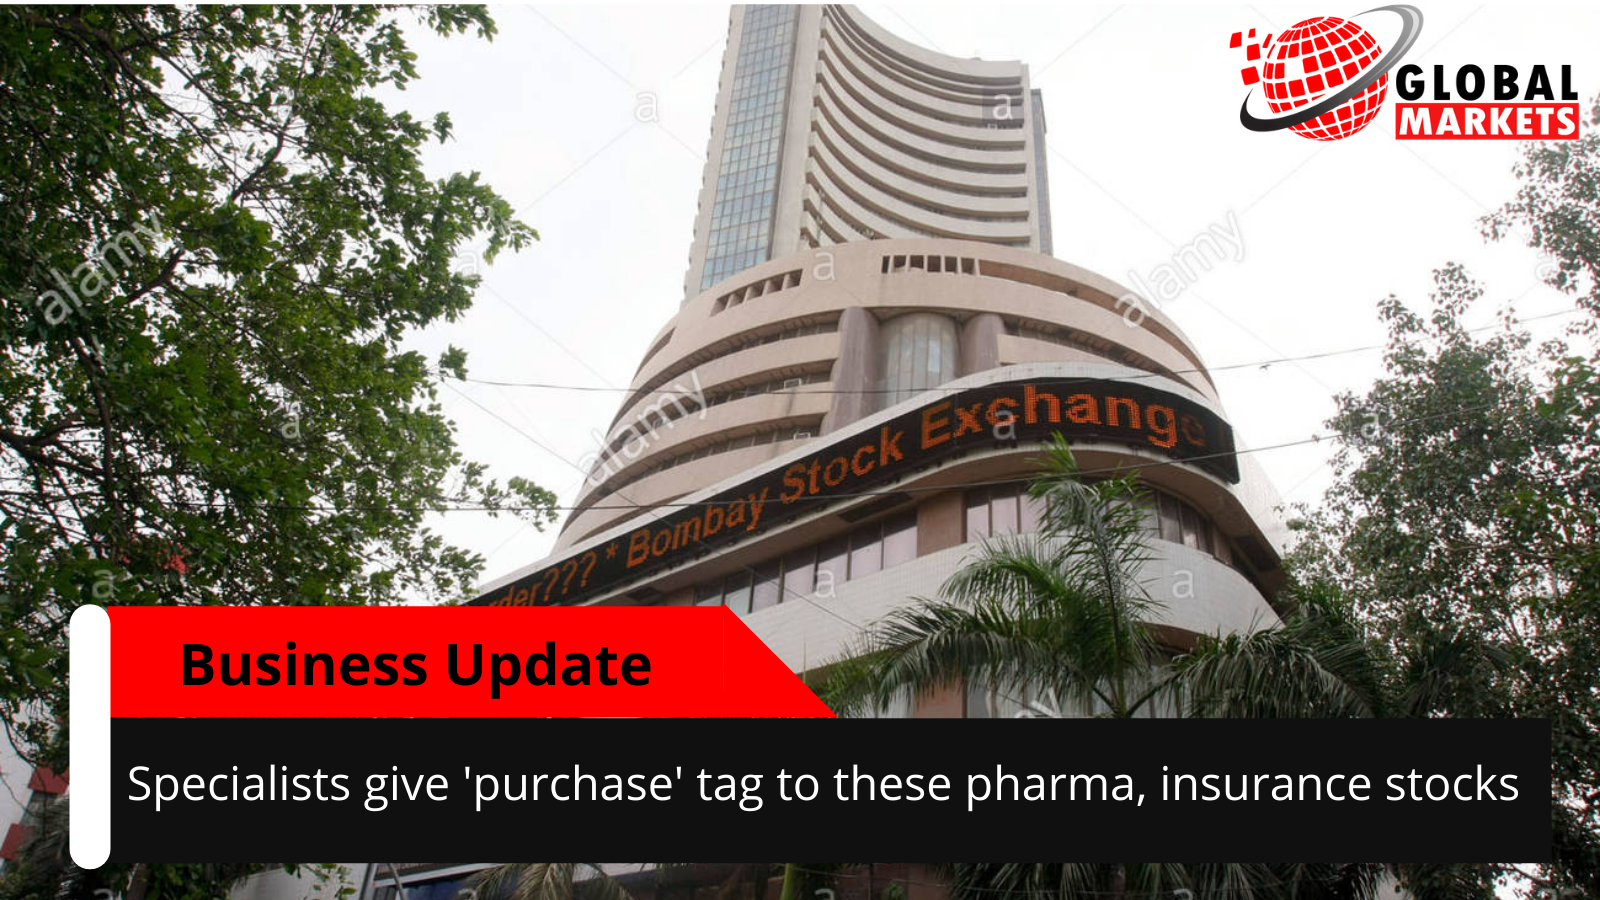 Specialists give 'purchase' tag to these pharma, insurance stocks